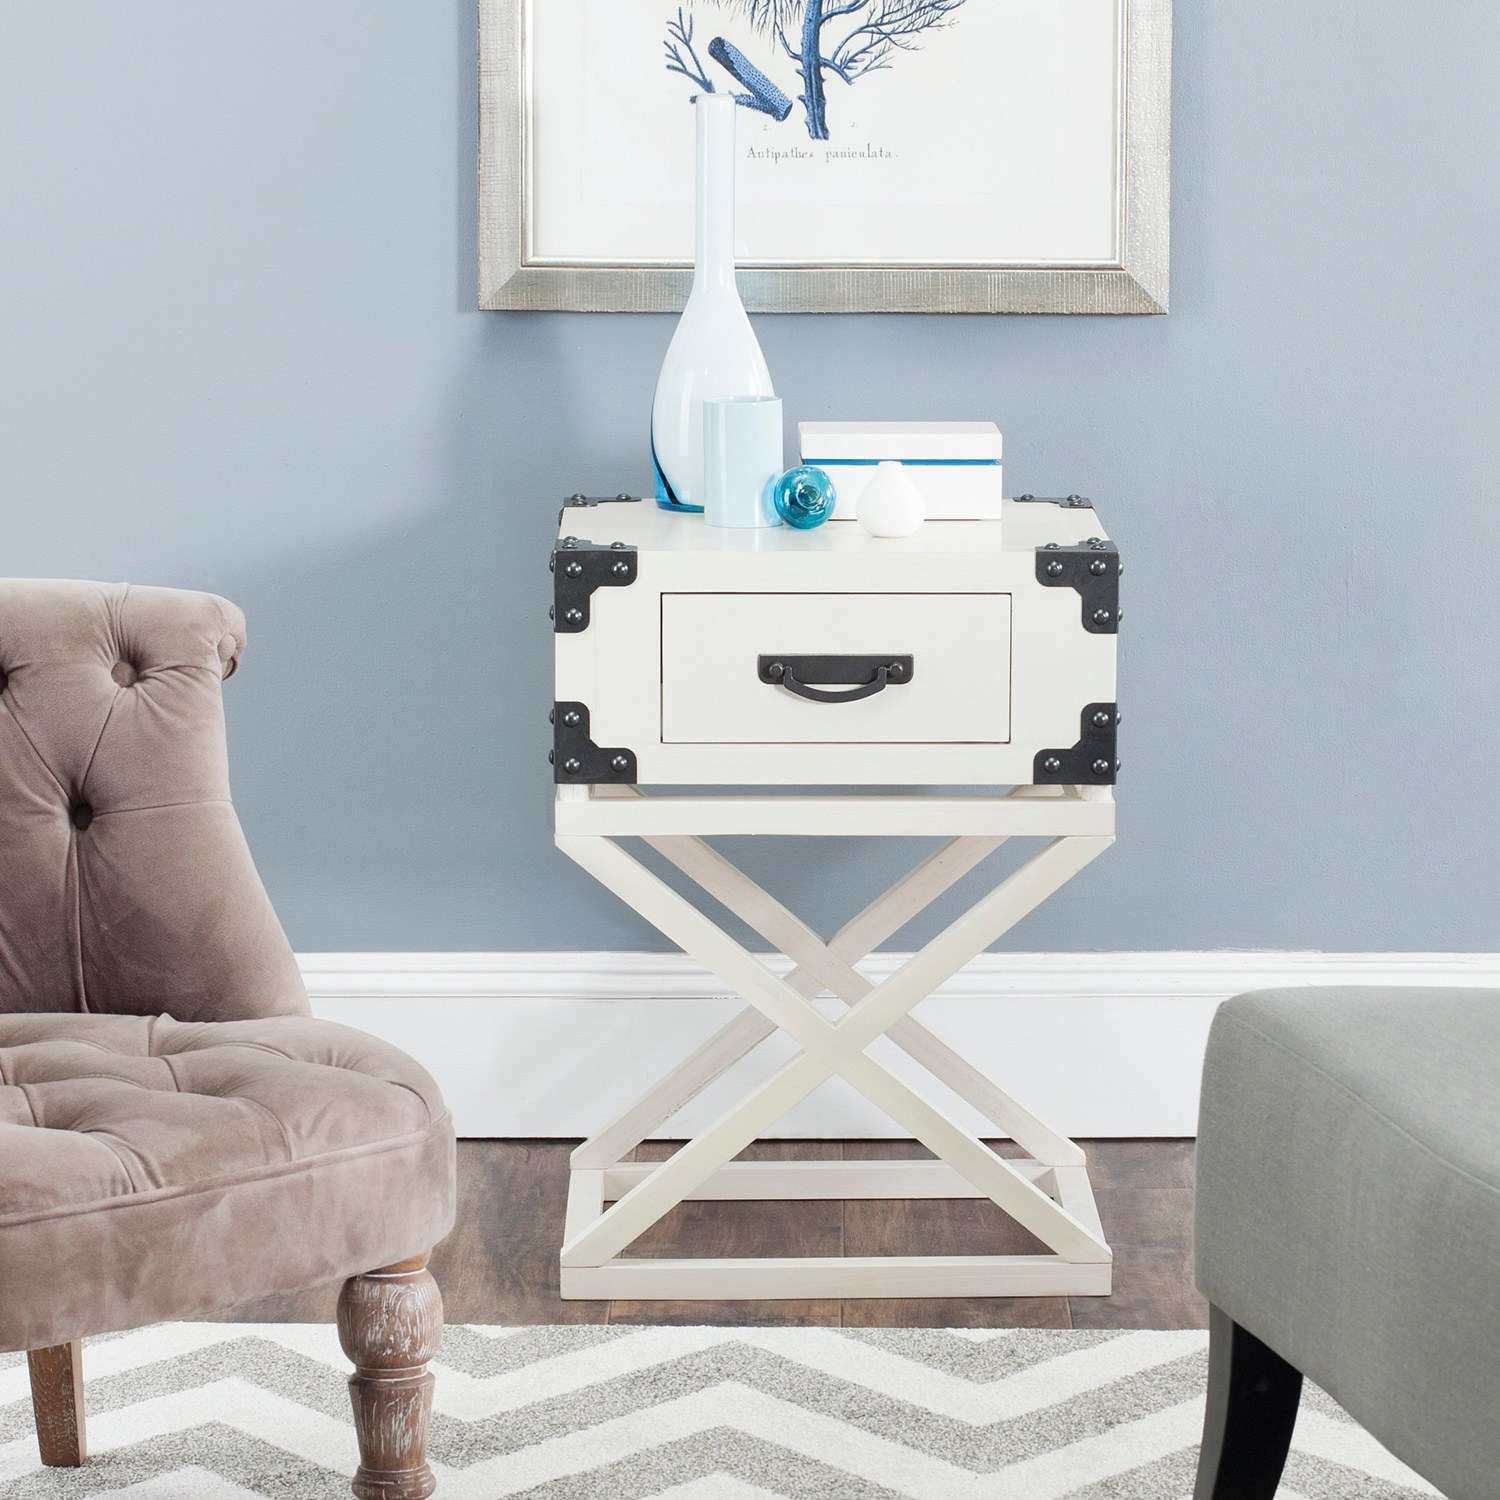 safavieh dunstan white accent table free shipping today tables living room target blue chair mosaic burgundy runner chinese style floor lamps tiffany lily lamp small glass storage